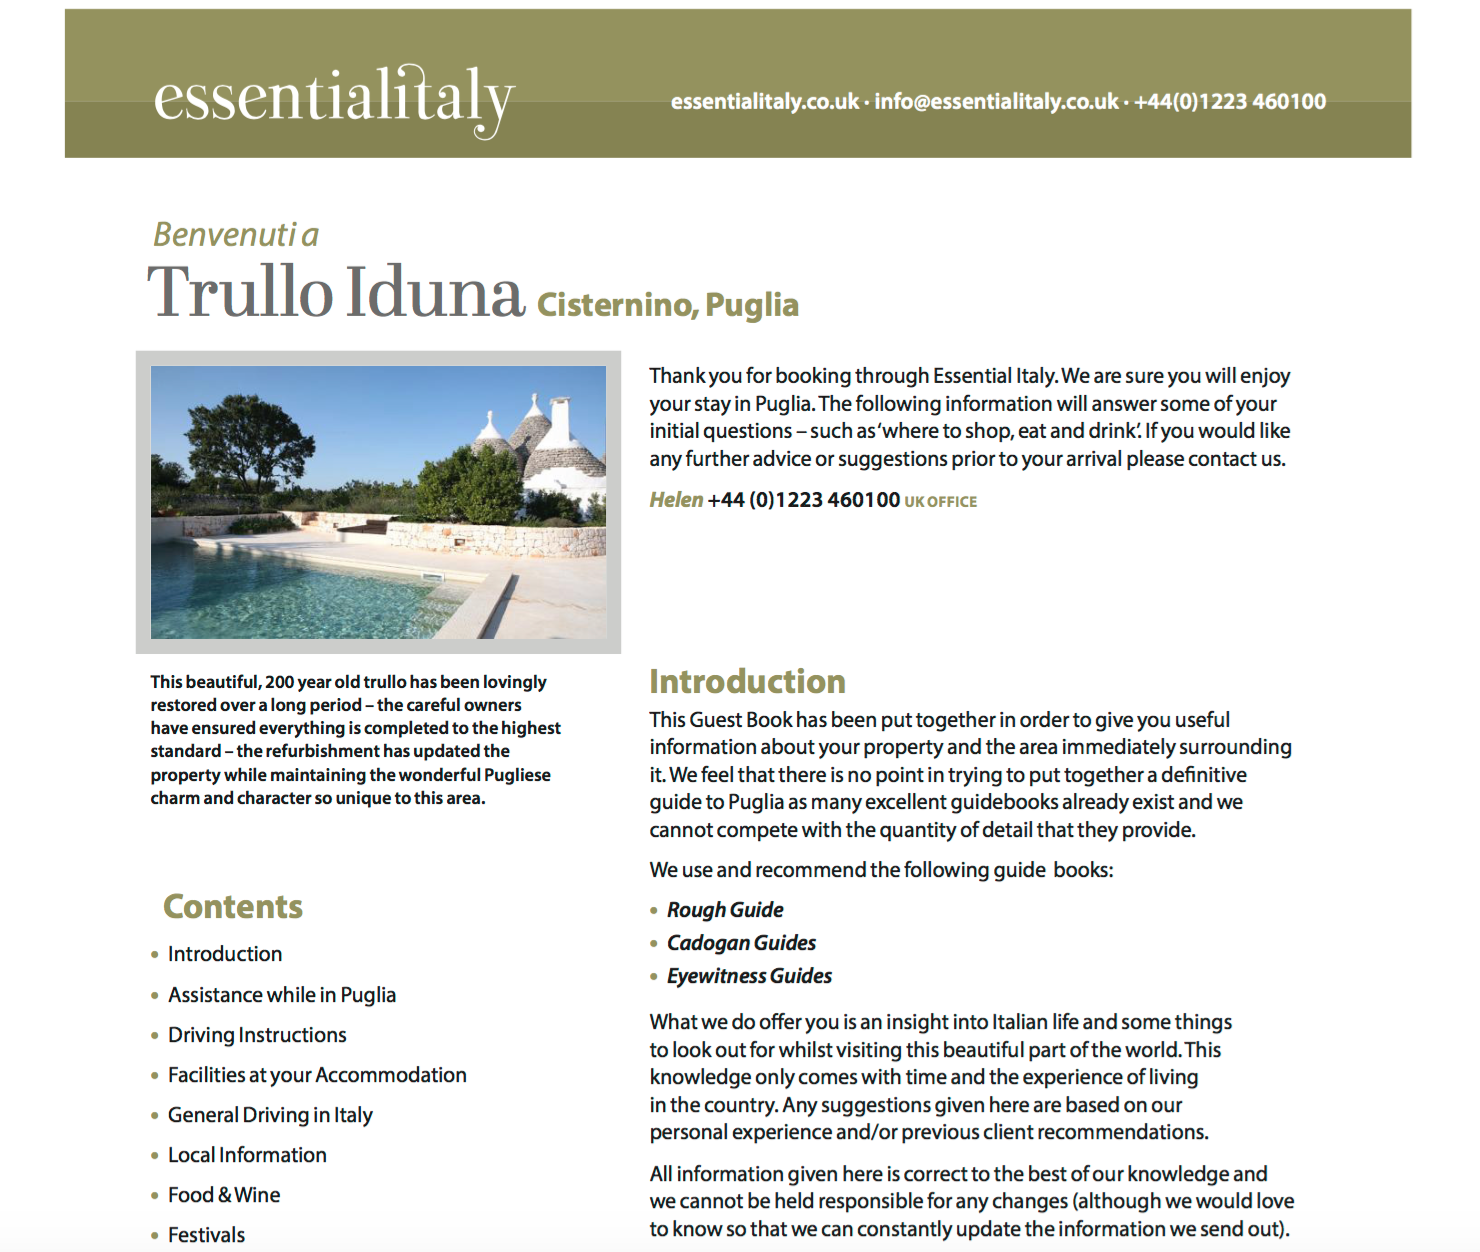 A guide to Trullo Iduna